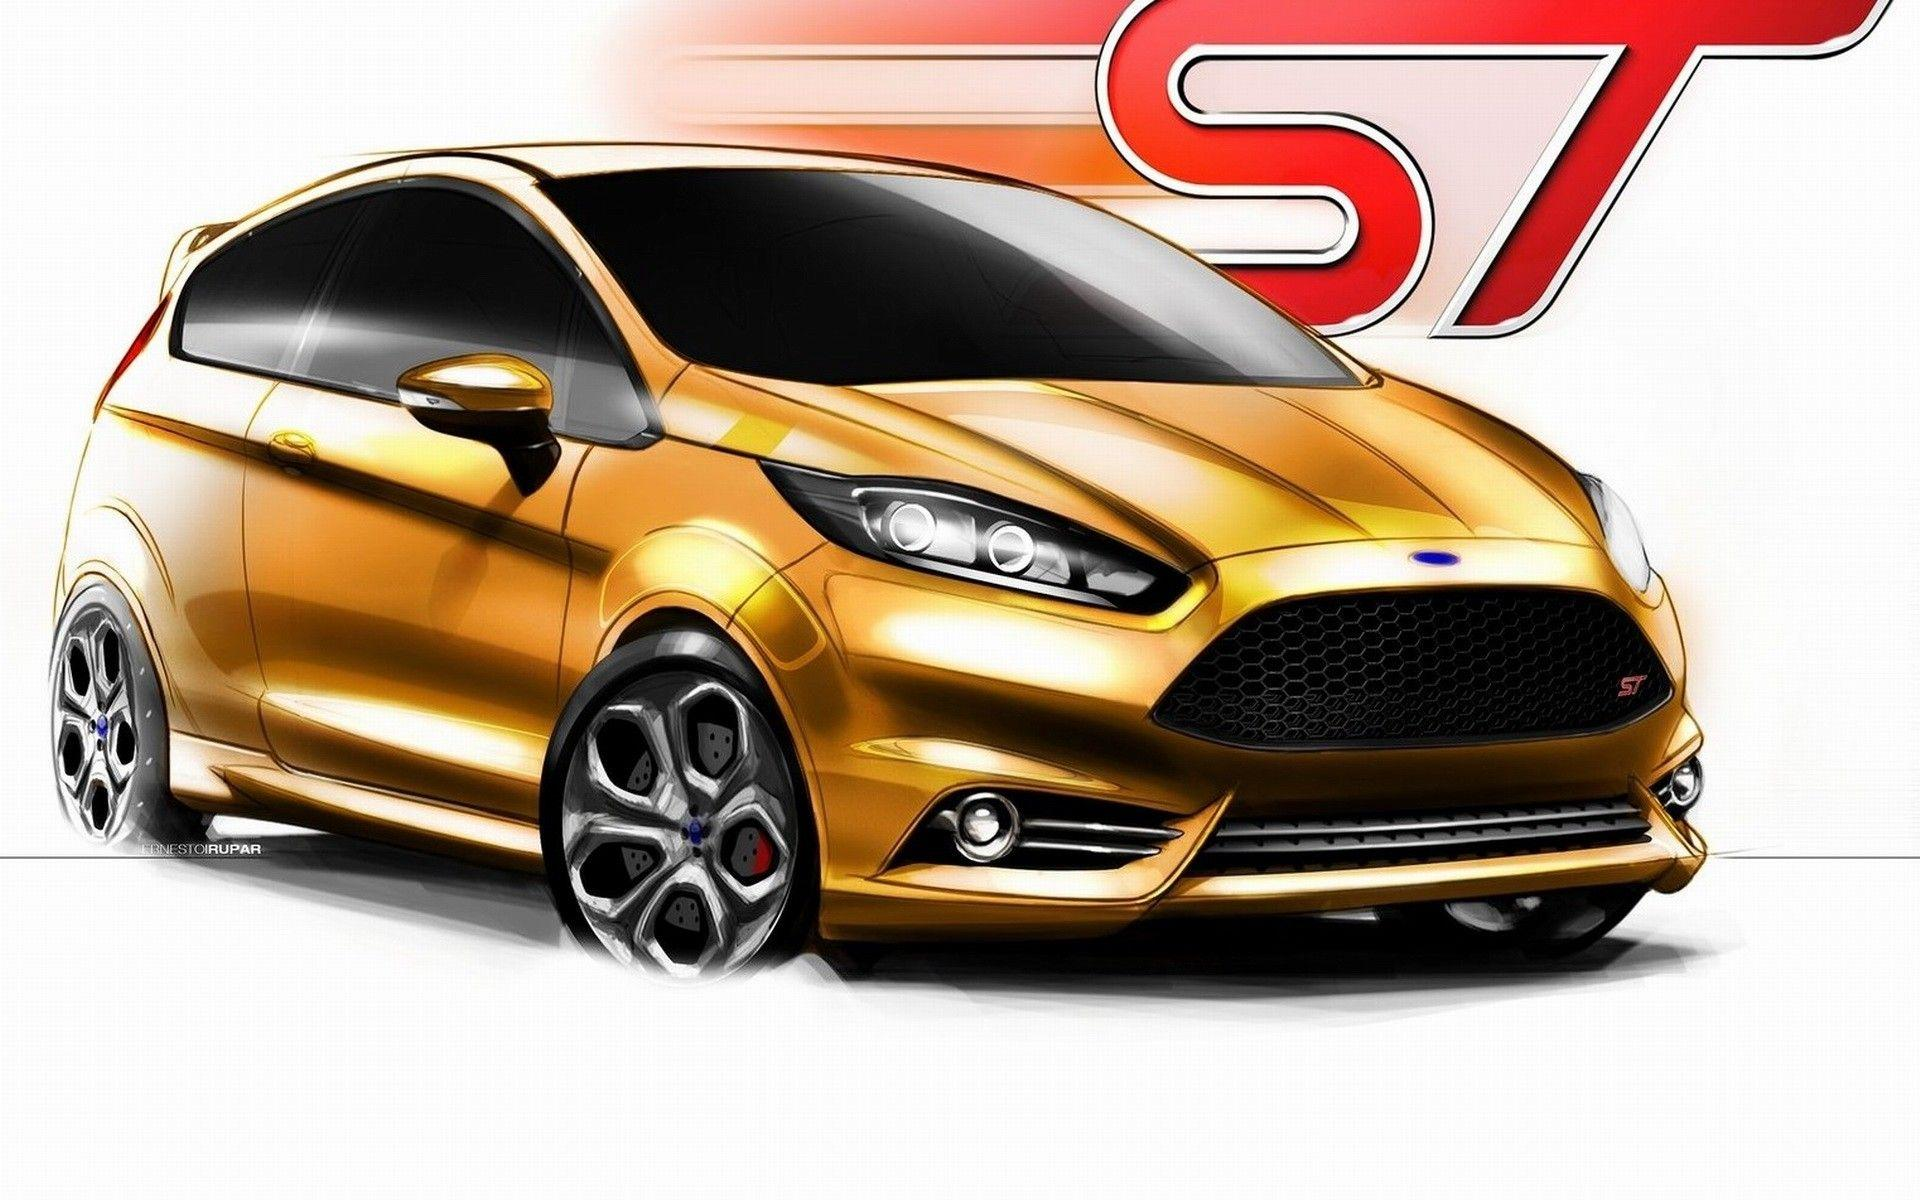 Ford Fiesta Wallpapers Group